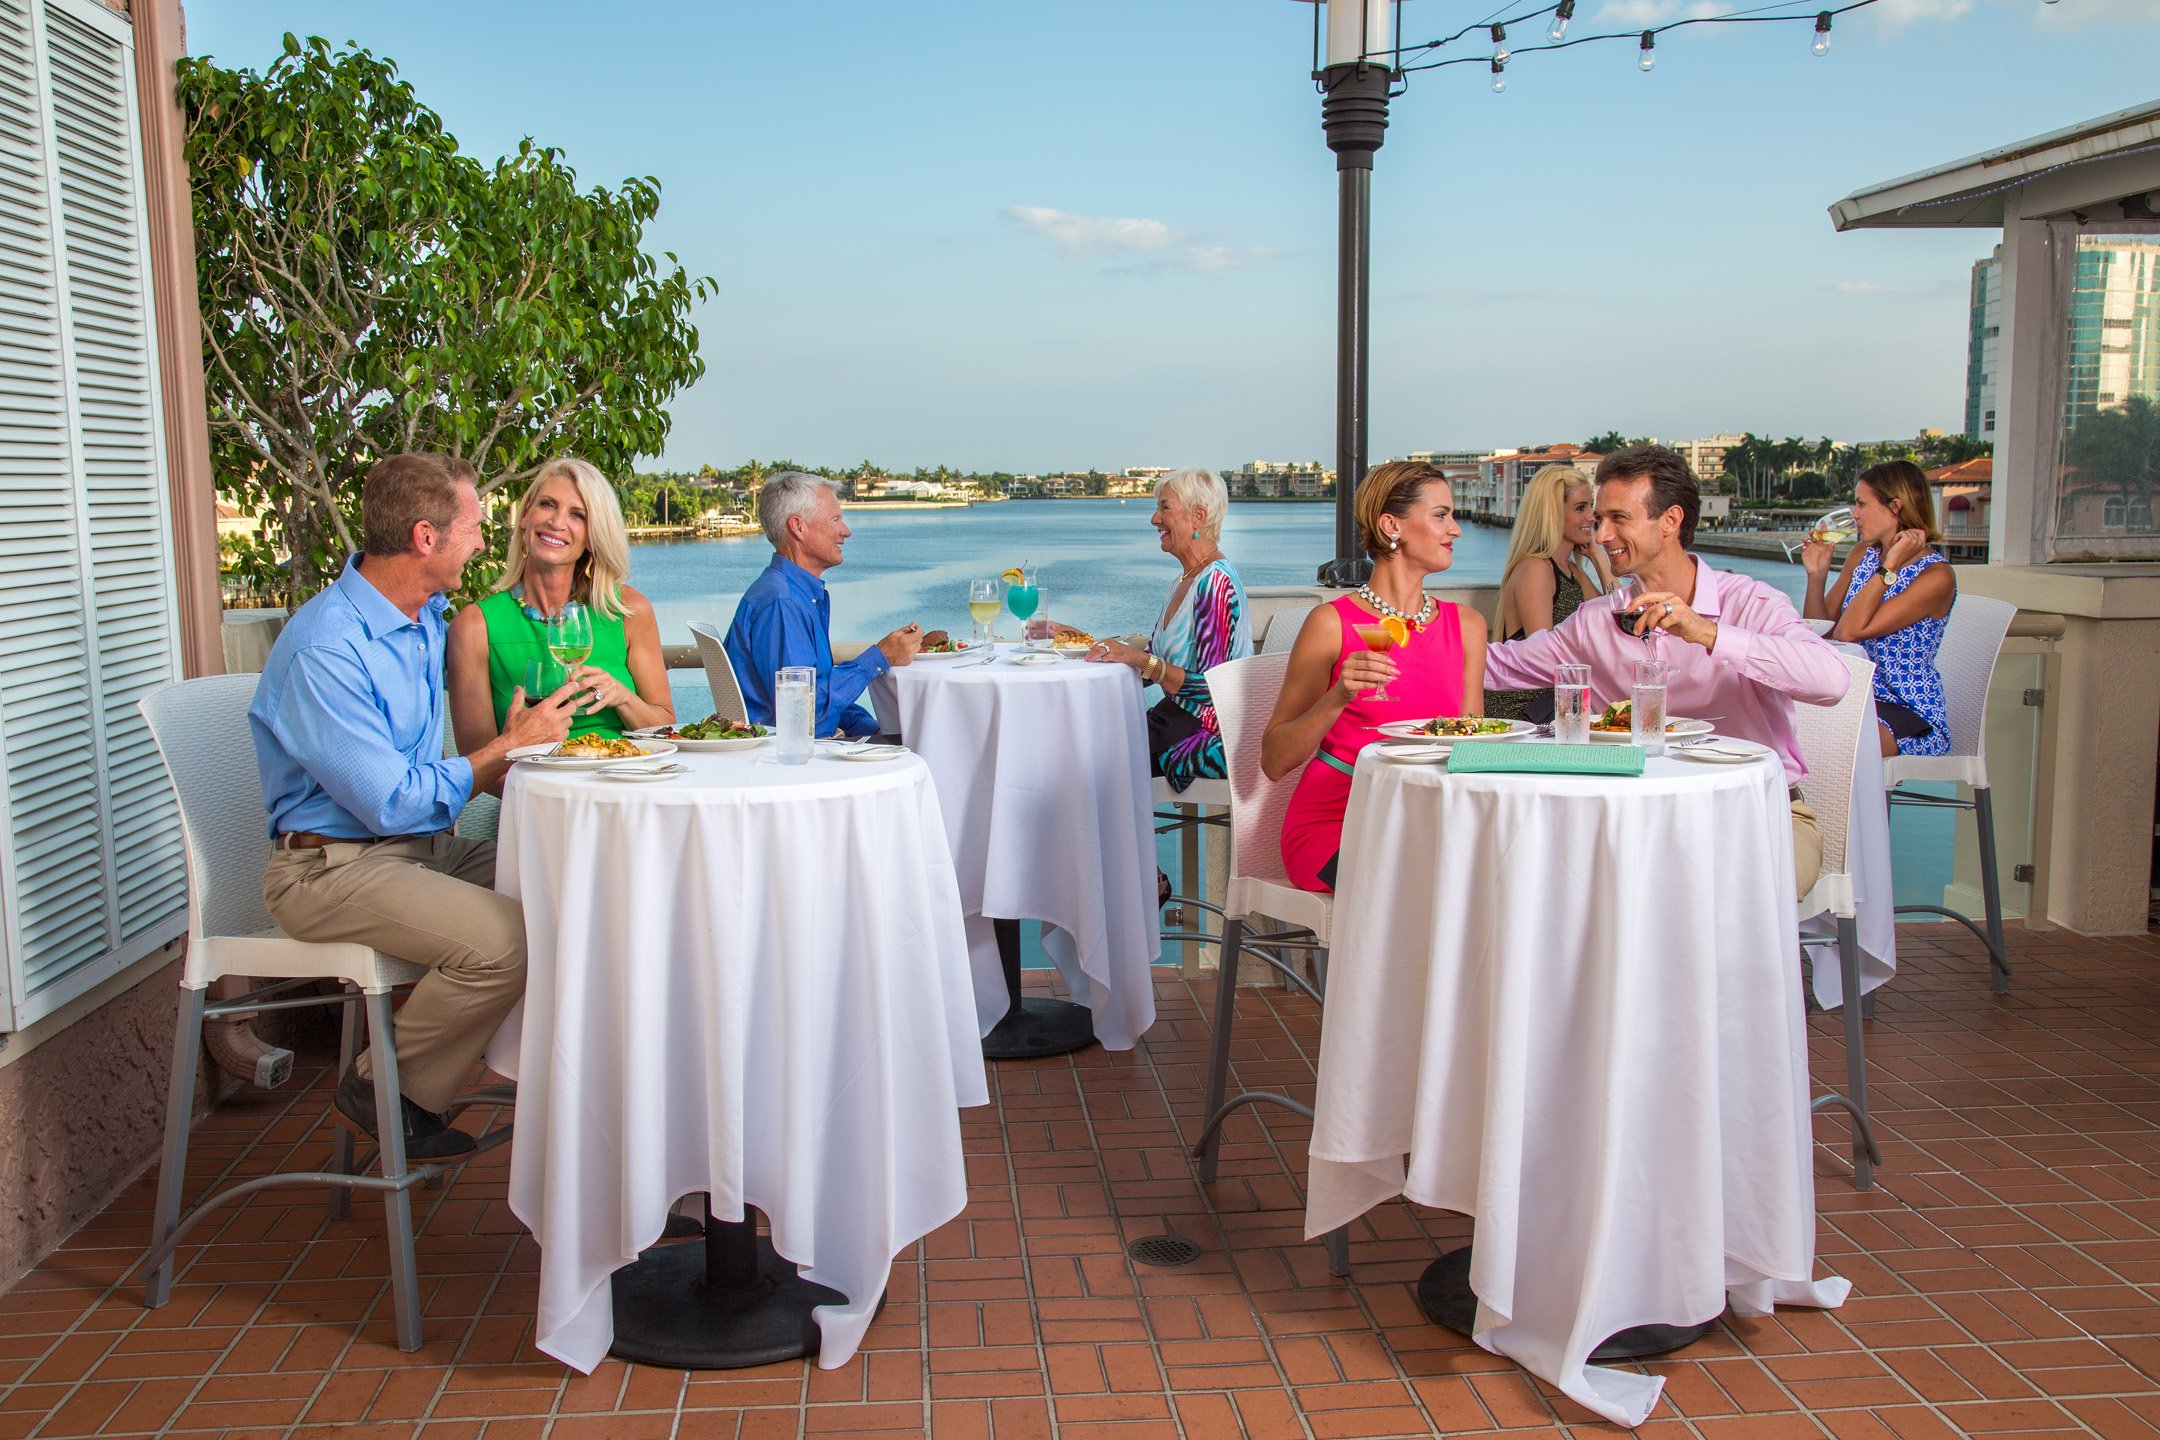 naples florida restaurants, waterfront naples restaurants, naples fine dining, shopping malls naples, shopping malls in naples fl, shopping centers naples florida, upscale shopping naples fl